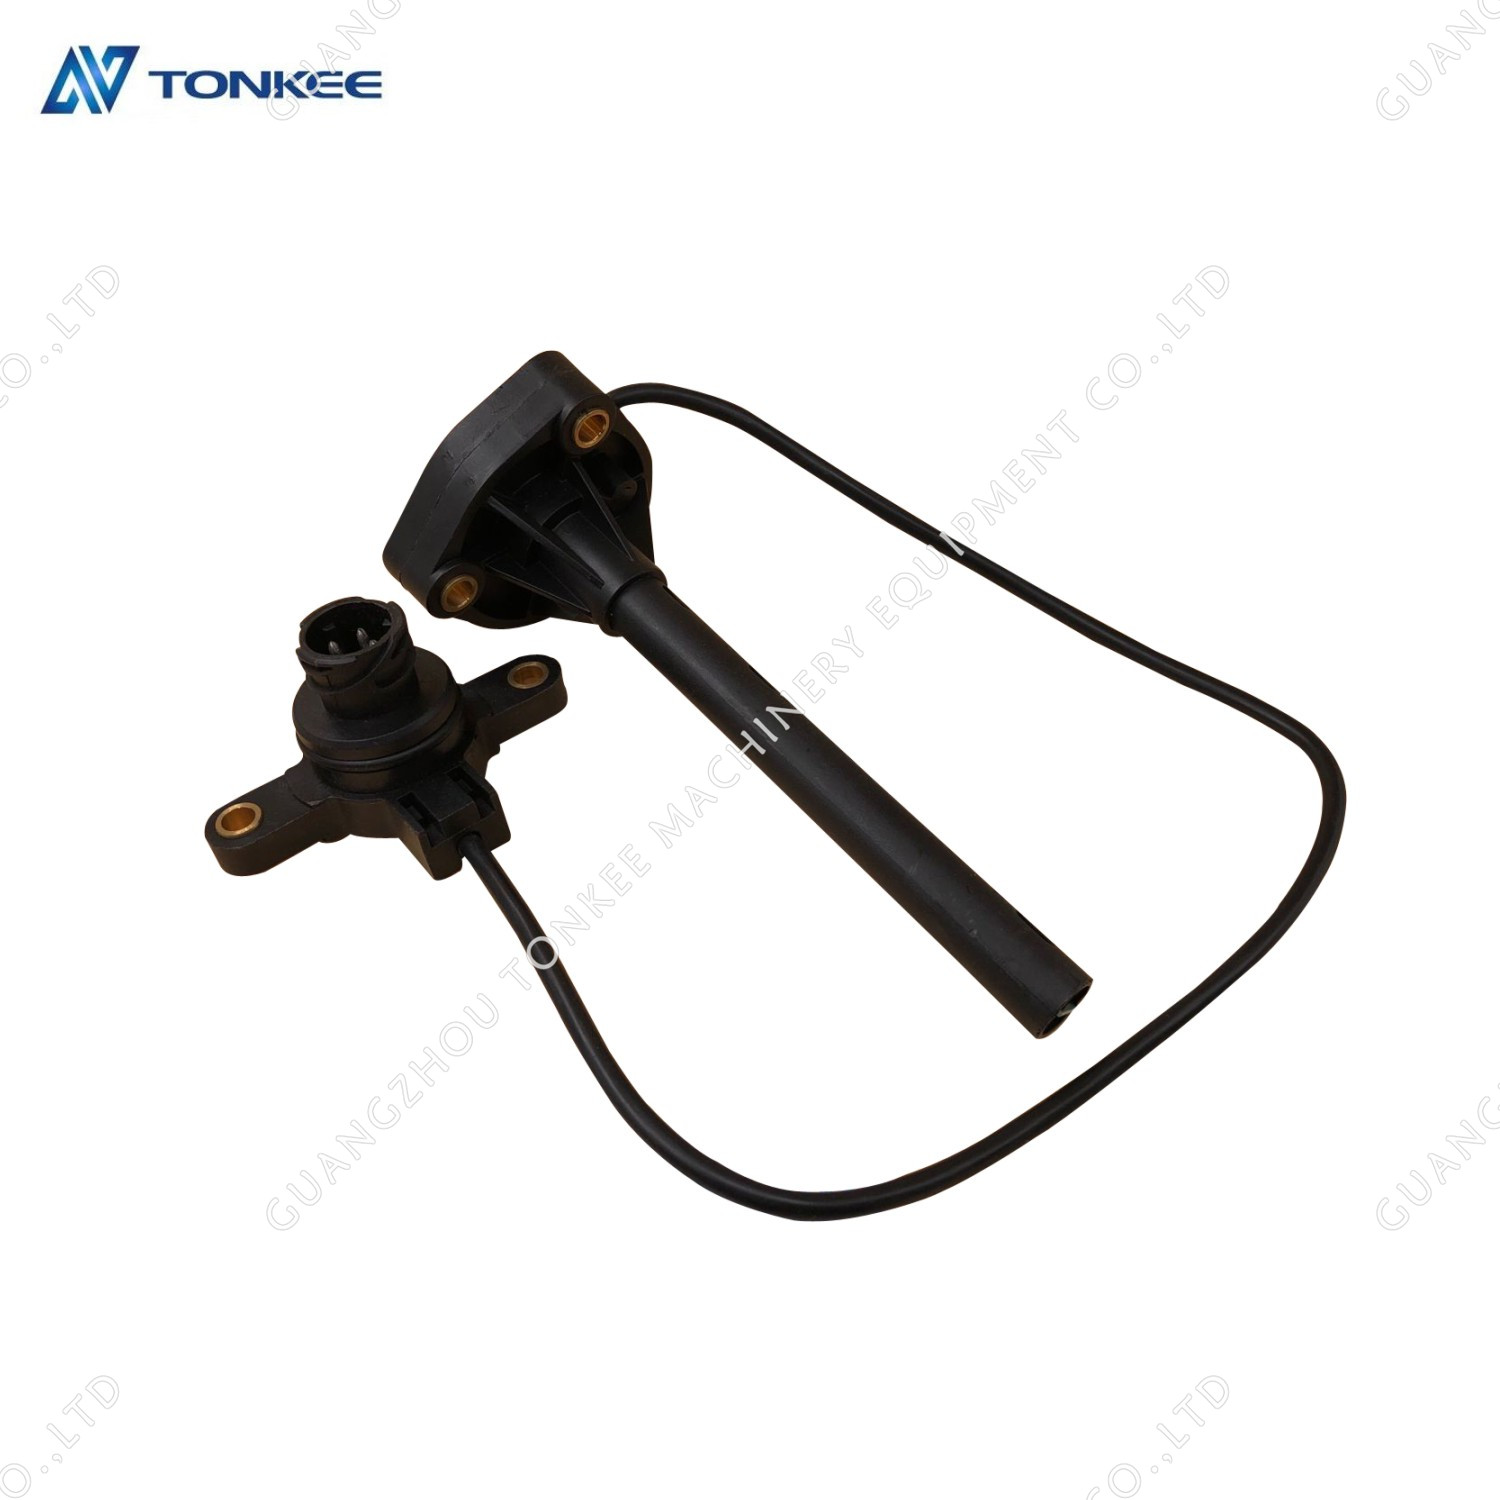 NEW 21042447 VOE21042447 24424110 oil level sensor EC360B EC460B EC700 excavator oil level sensor for VOLVO excavator truck